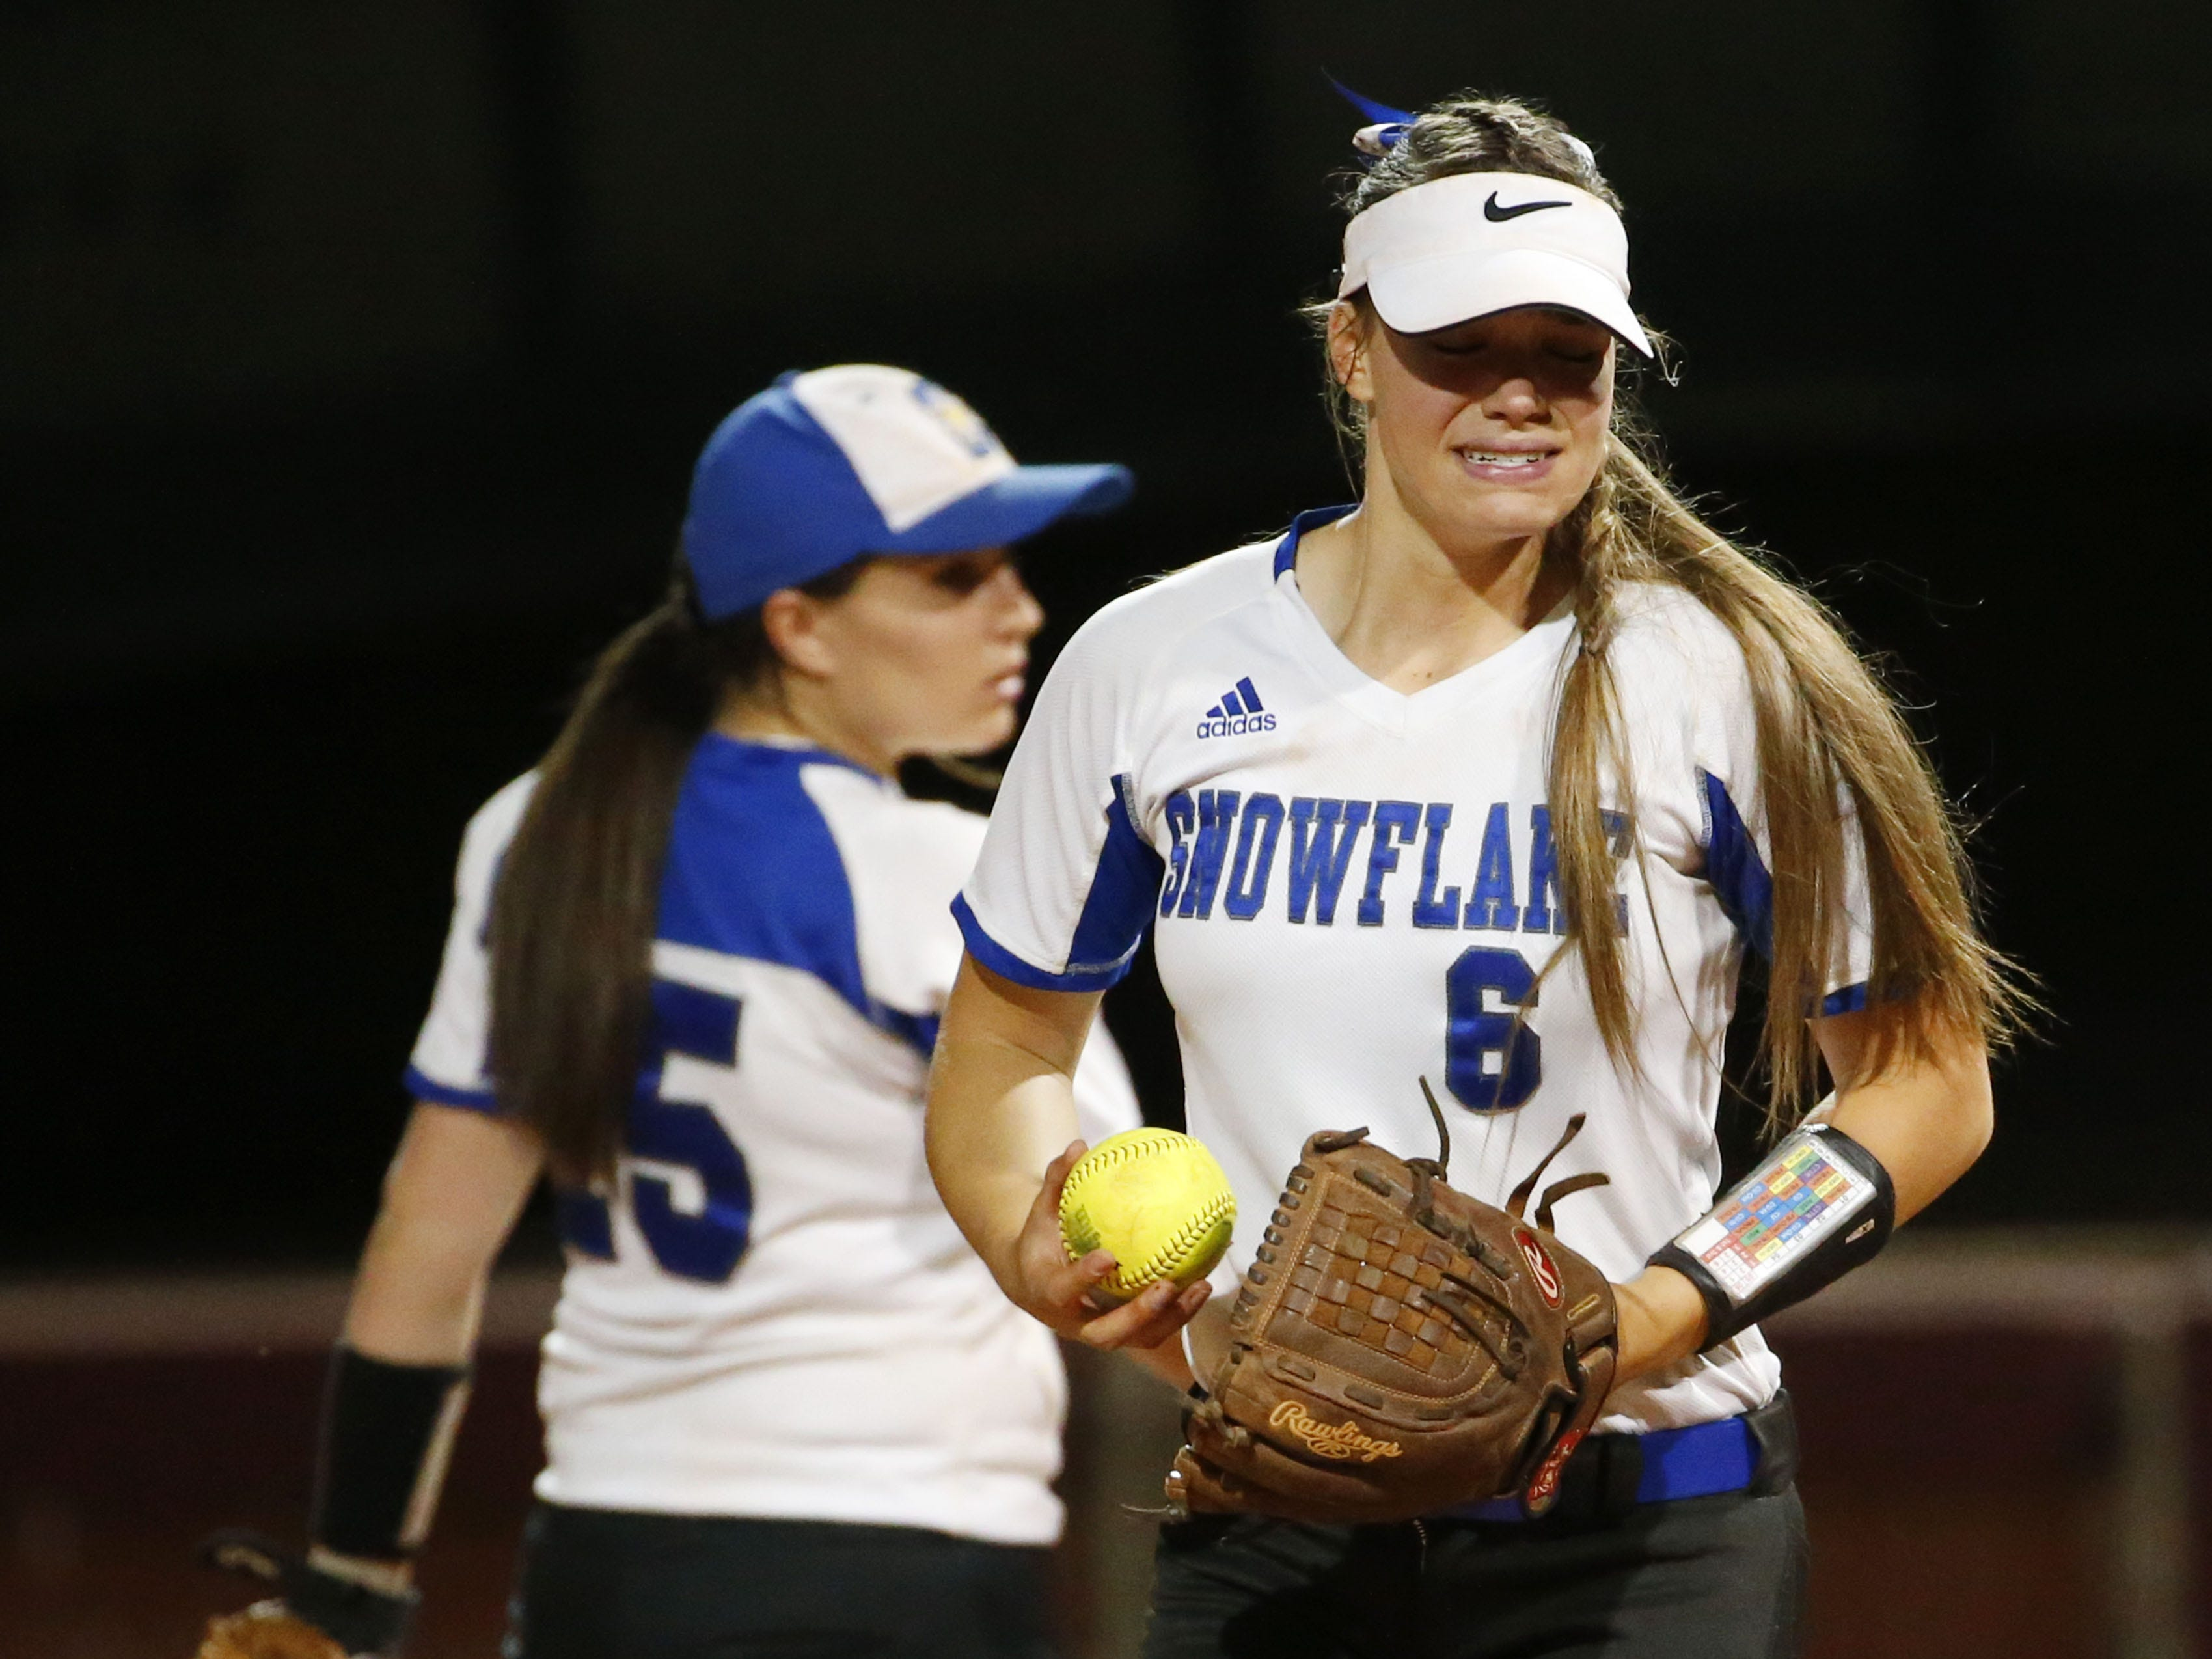 Snowflake pitcher Anna Berger (6) grimaces after being hit by the ball against Sabino during the 3A softball state championship game in Tempe May 6, 2019.